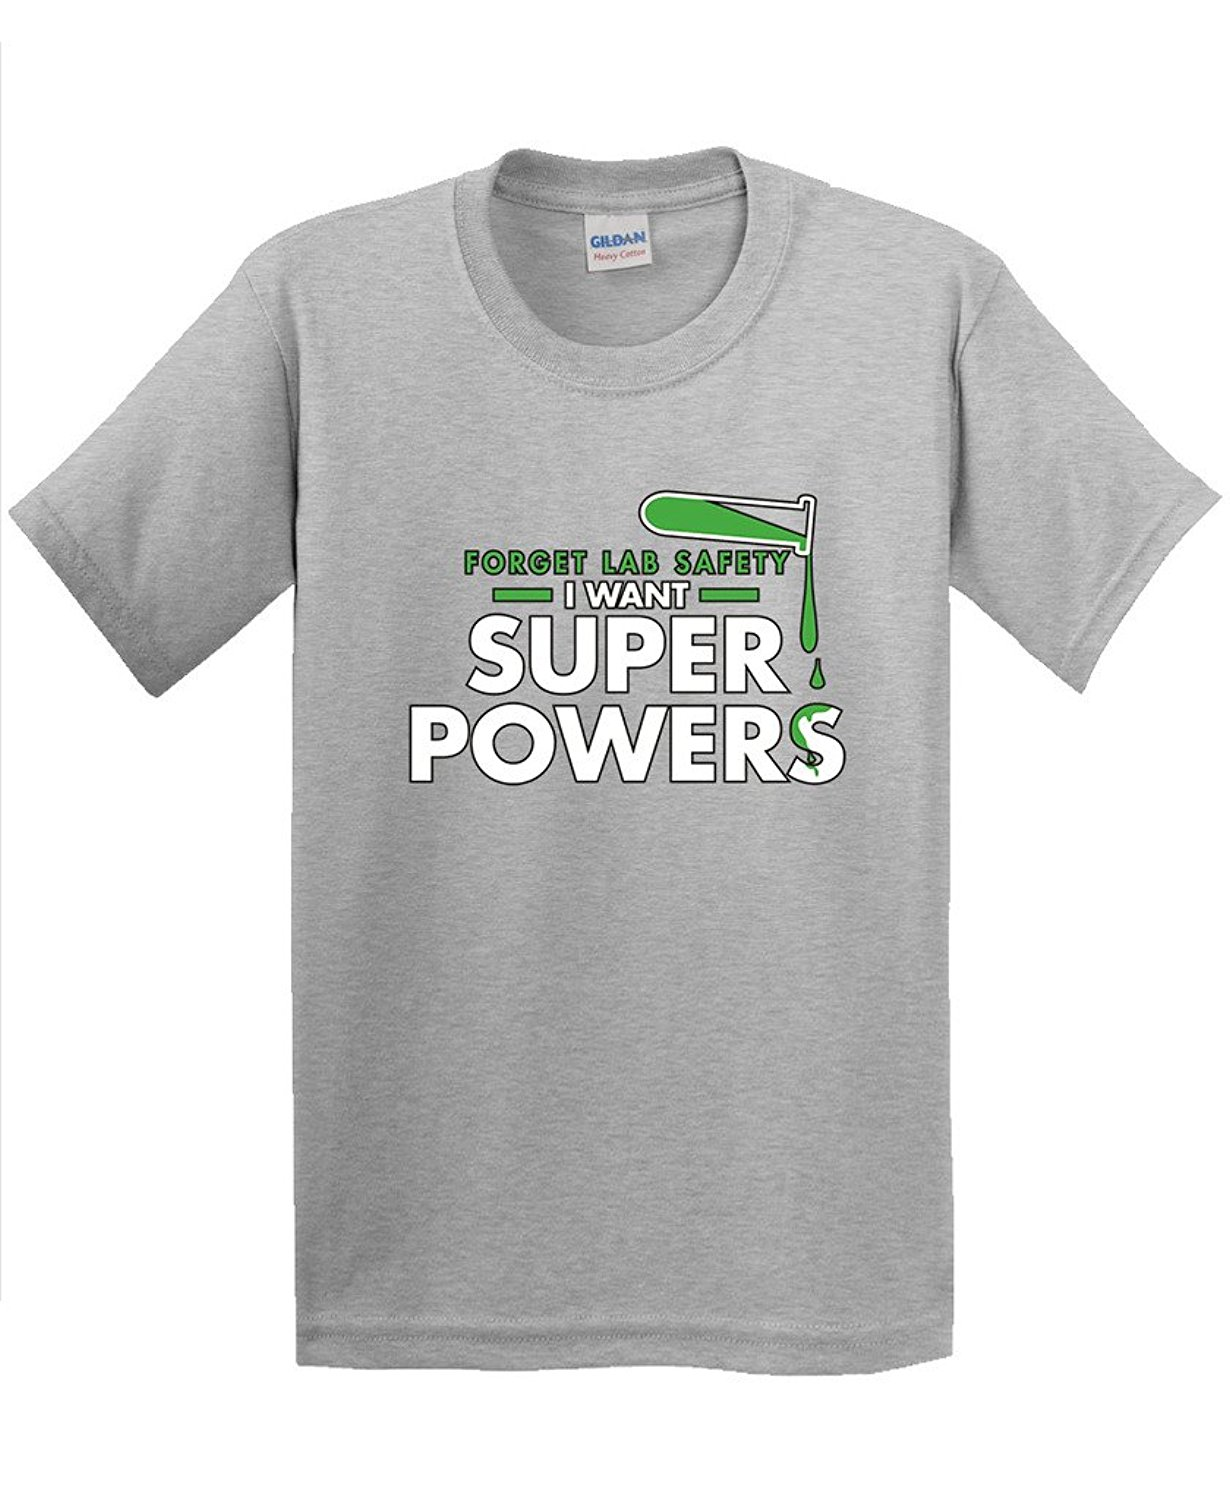 Hot New 2017 Summer Fashion T Shirts Forget Lab Safety I Want Super Powers Gift Idea Novelty Science Funny T Shirt